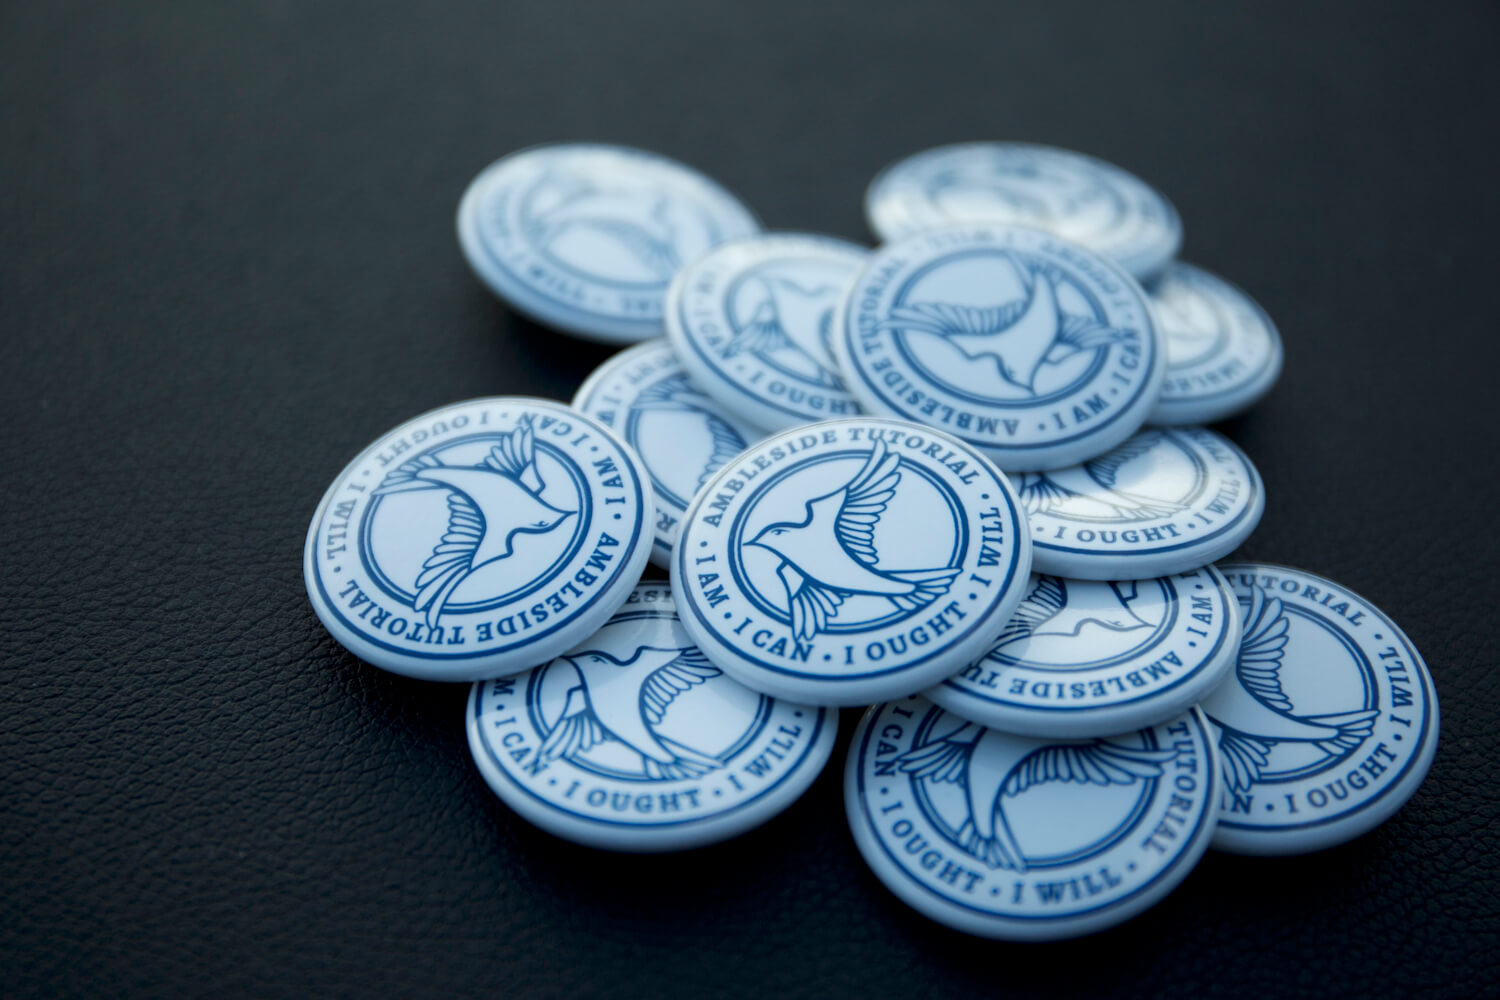 Example of a logo design project completed by Serve featuring buttons with a skylark on them.